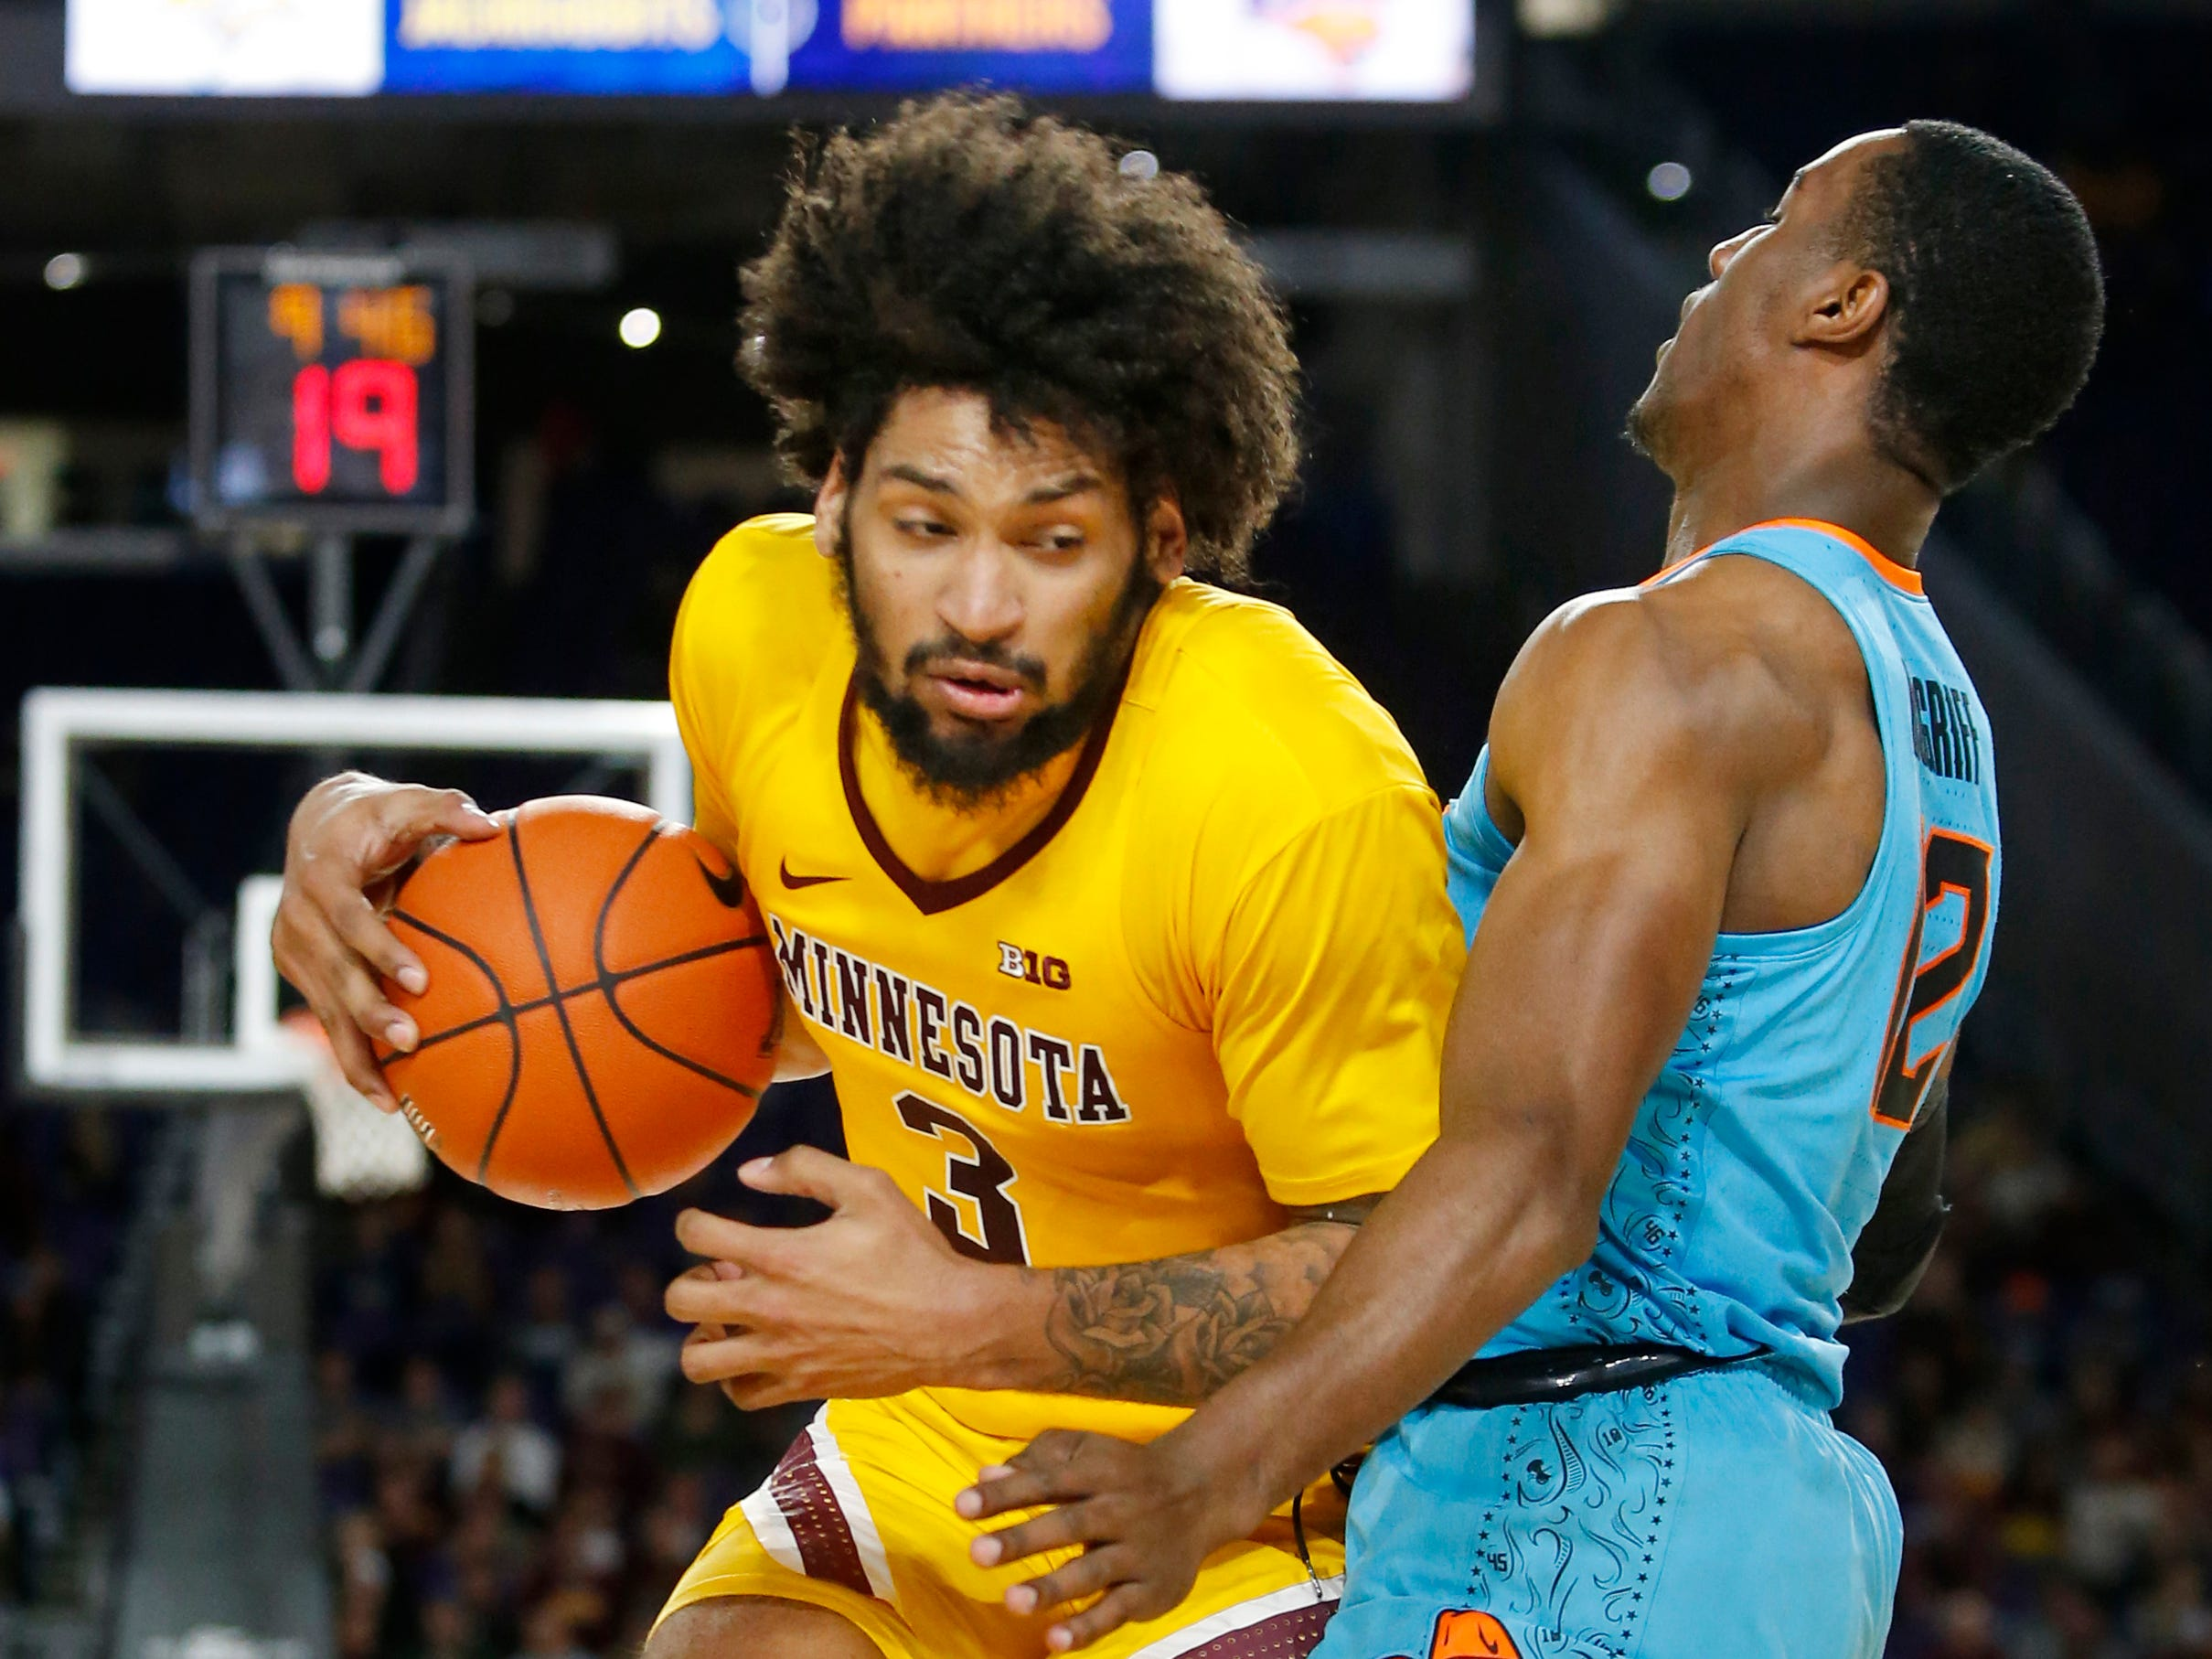 Minnesota's Jordan Murphy (3) drives around Oklahoma State's Cameron McGriff during the first half of an NCAA college basketball game Friday, Nov. 30, 2018, in Minneapolis. (AP Photo/Bruce Kluckhohn)